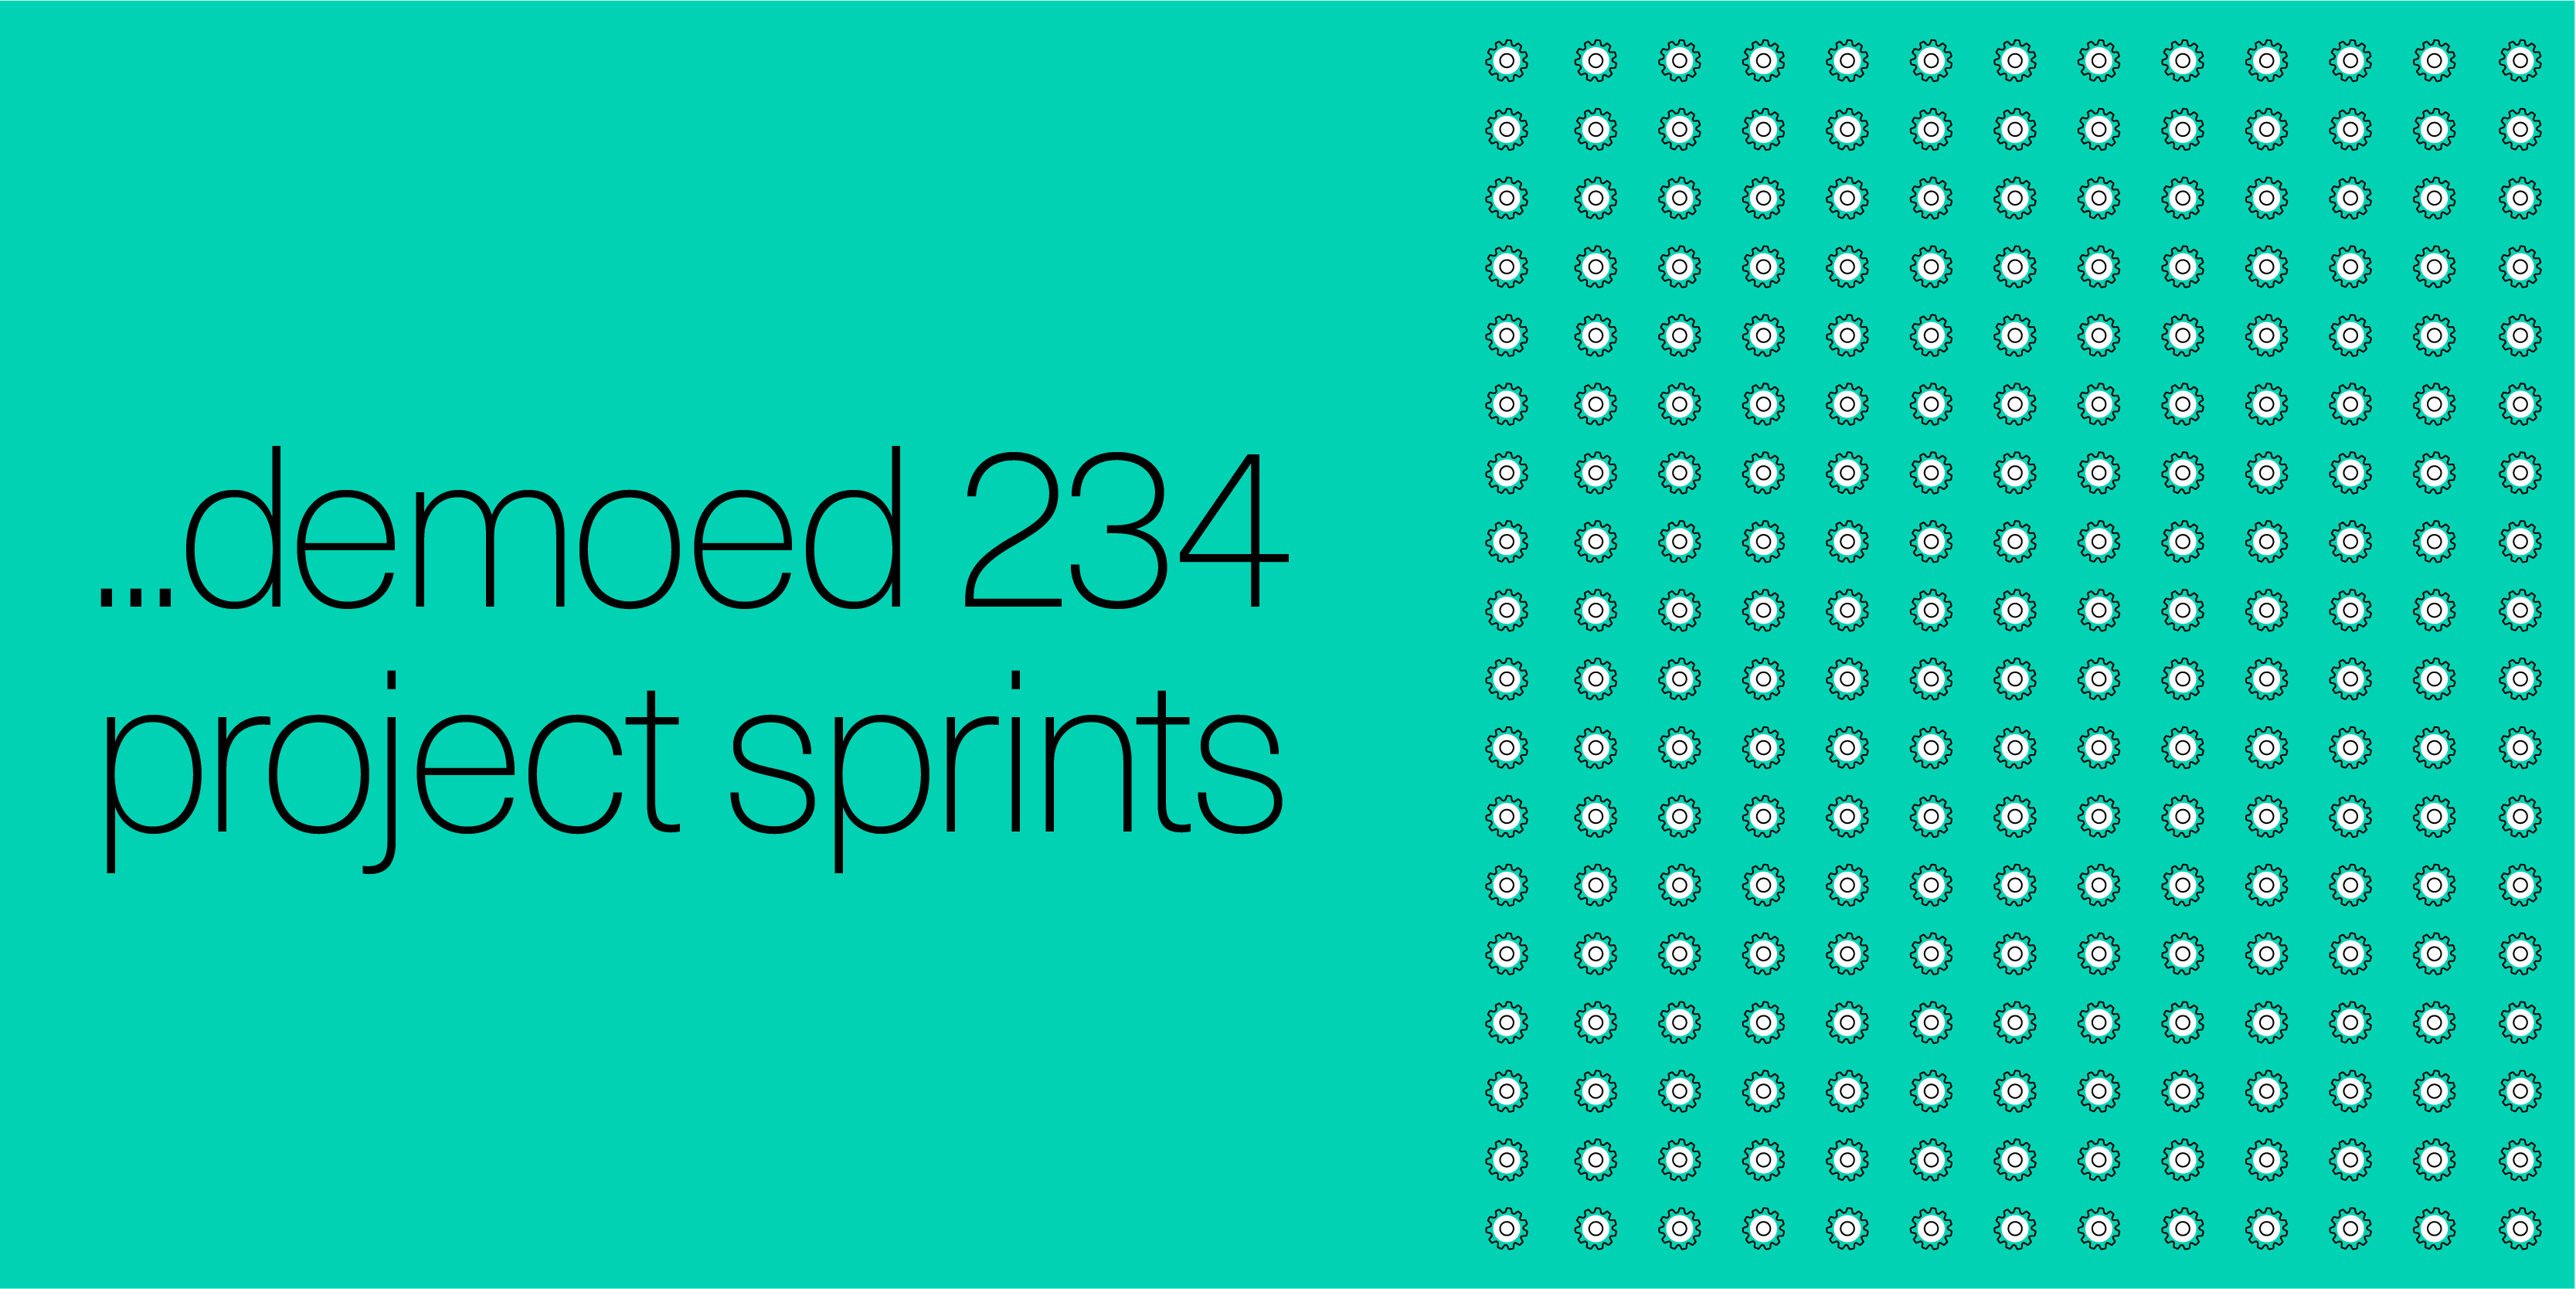 demoed 234 project sprints